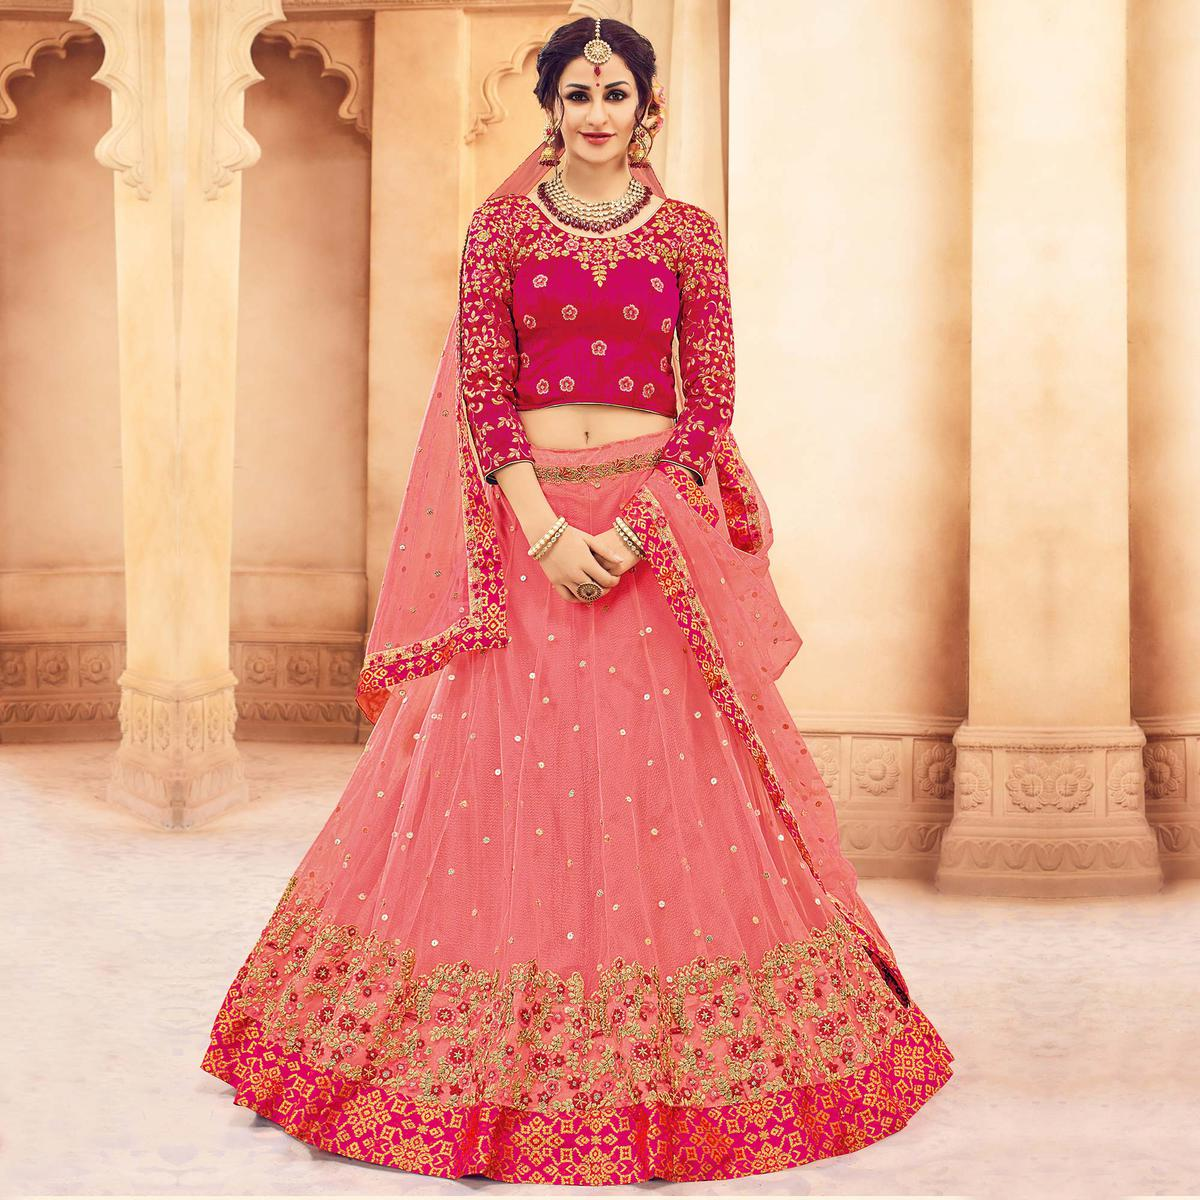 292d7b4b7a Buy Classy Pink Designer Embroidered Butterfly Net Lehenga Choli for womens  online India, Best Prices, Reviews - Peachmode